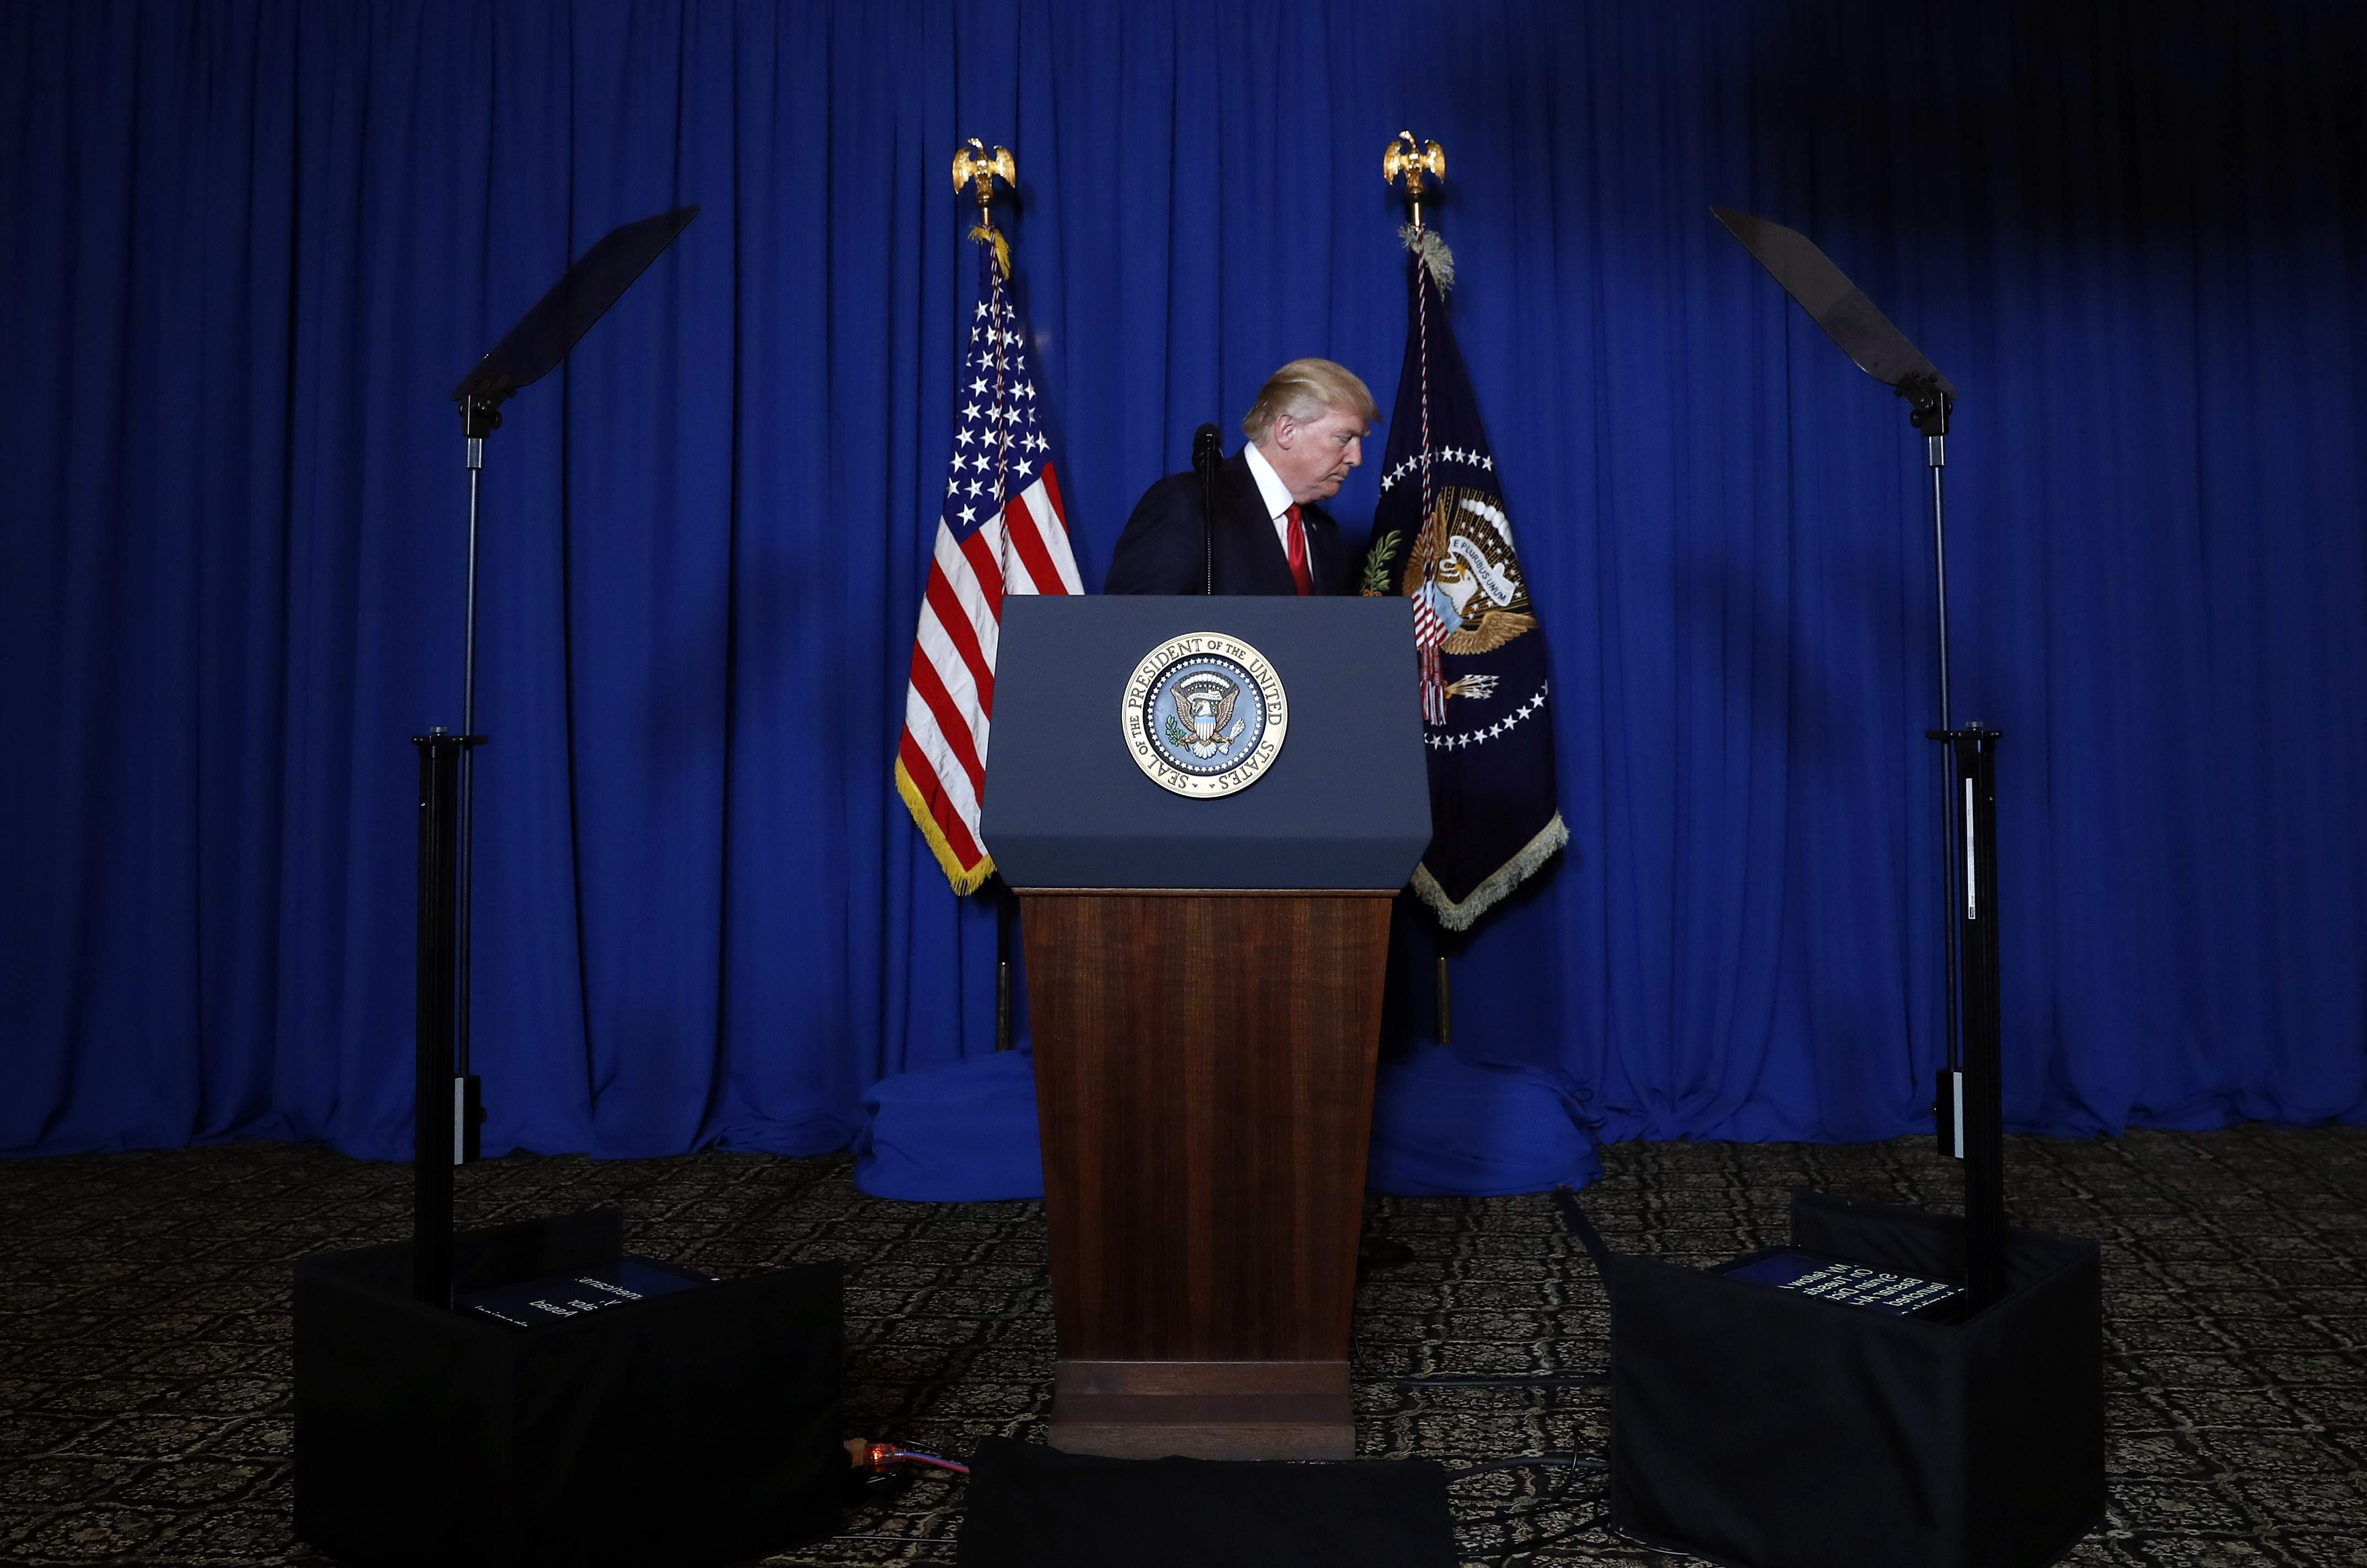 DAY 77 - In this April 6, 2017, file photo, President Donald Trump walks from the podium after speaking at Mar-a-Lago in Palm Beach, Fla., Thursday, April 6, 2017, after the U.S. fired a barrage of cruise missiles into Syria. (AP Photo/Alex Brandon, File)